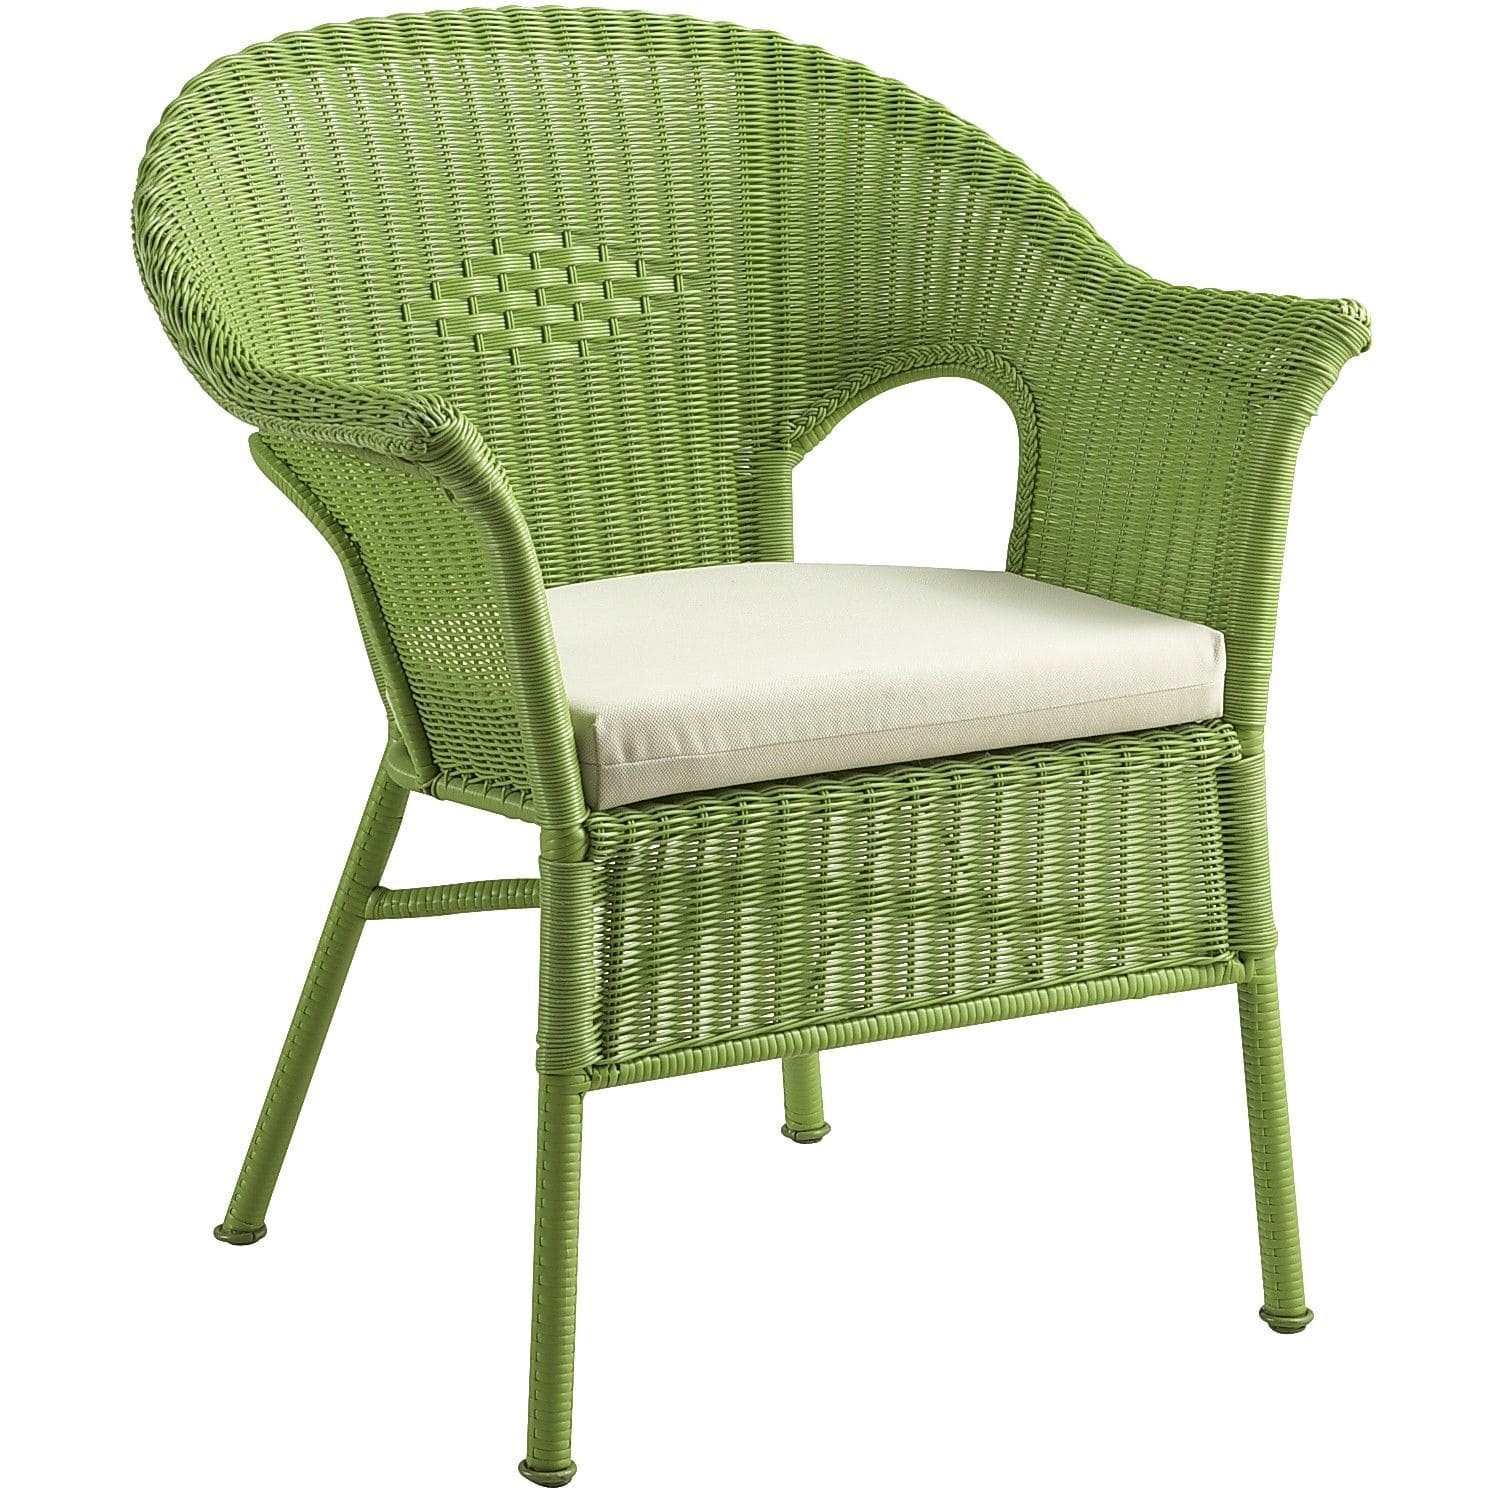 Pier 1 Imports Patio Furniture | Pier One Wicker Furniture | Pier 1 Patio Furniture